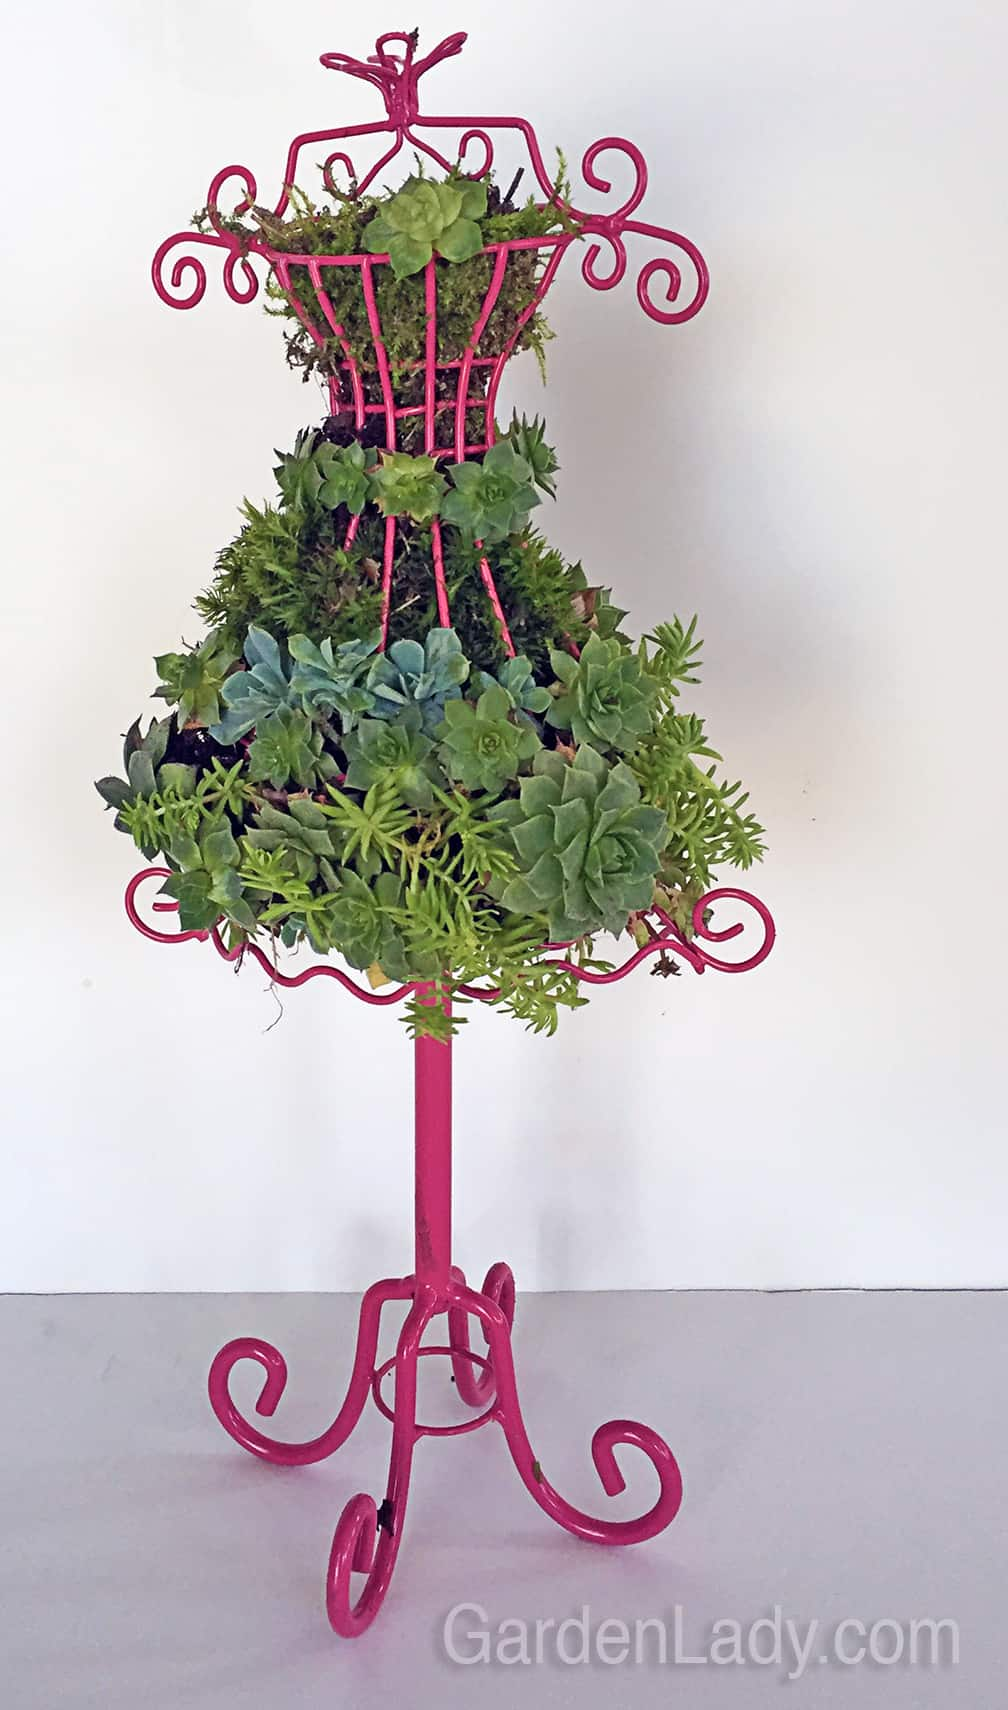 Gardenlady Succulent Craft Projects